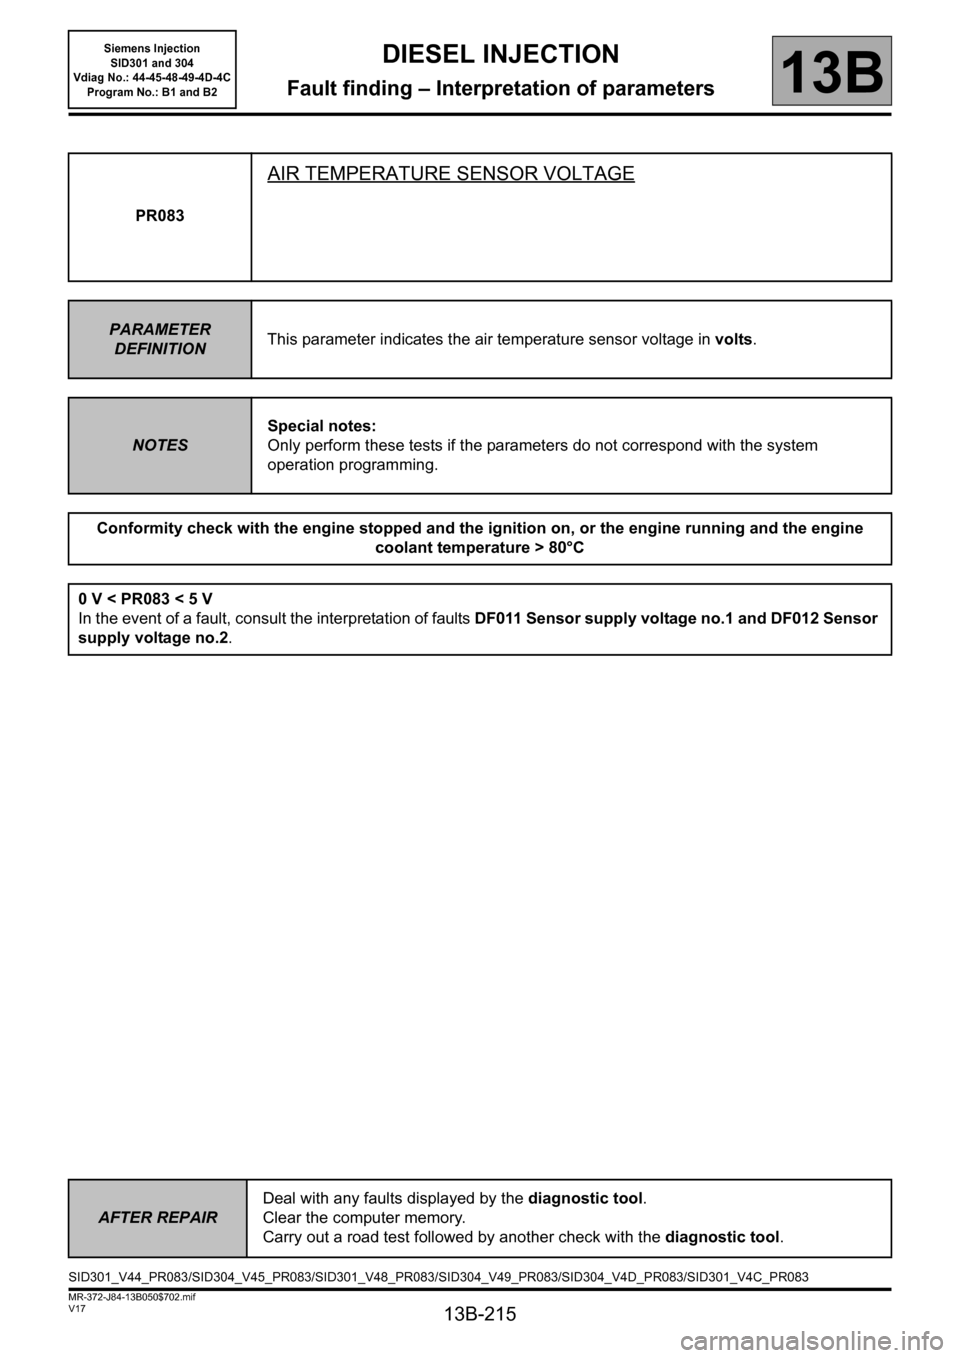 RENAULT SCENIC 2011 J95 / 3.G Engine And Peripherals Siemens Injection Workshop Manual, Page 215